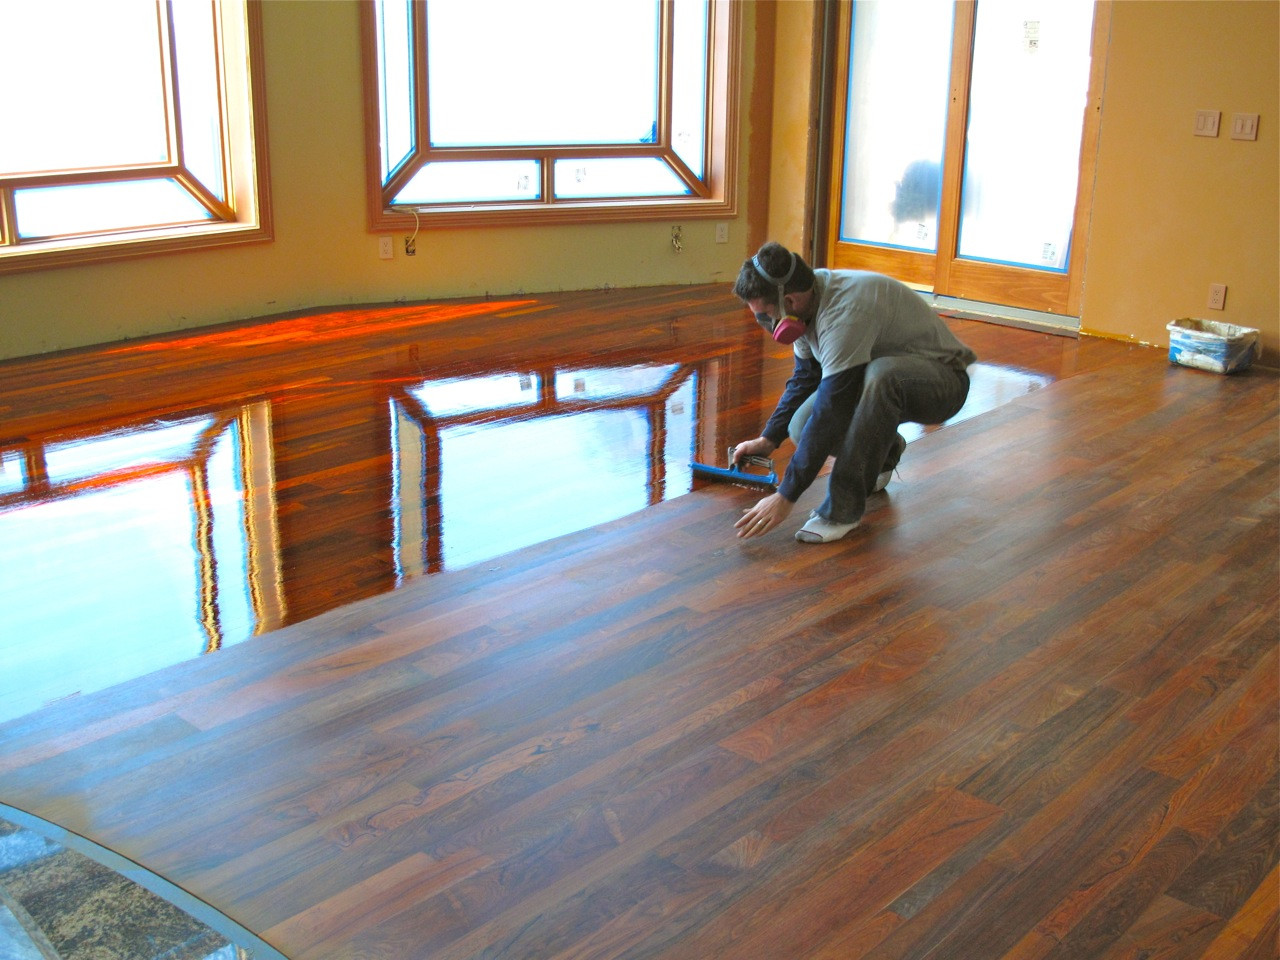 hardwood floor refinishing bellingham wa of swedish finish wood floors wikizie co intended for exotic hardwood floor refinishing bellingham wa hoffmann